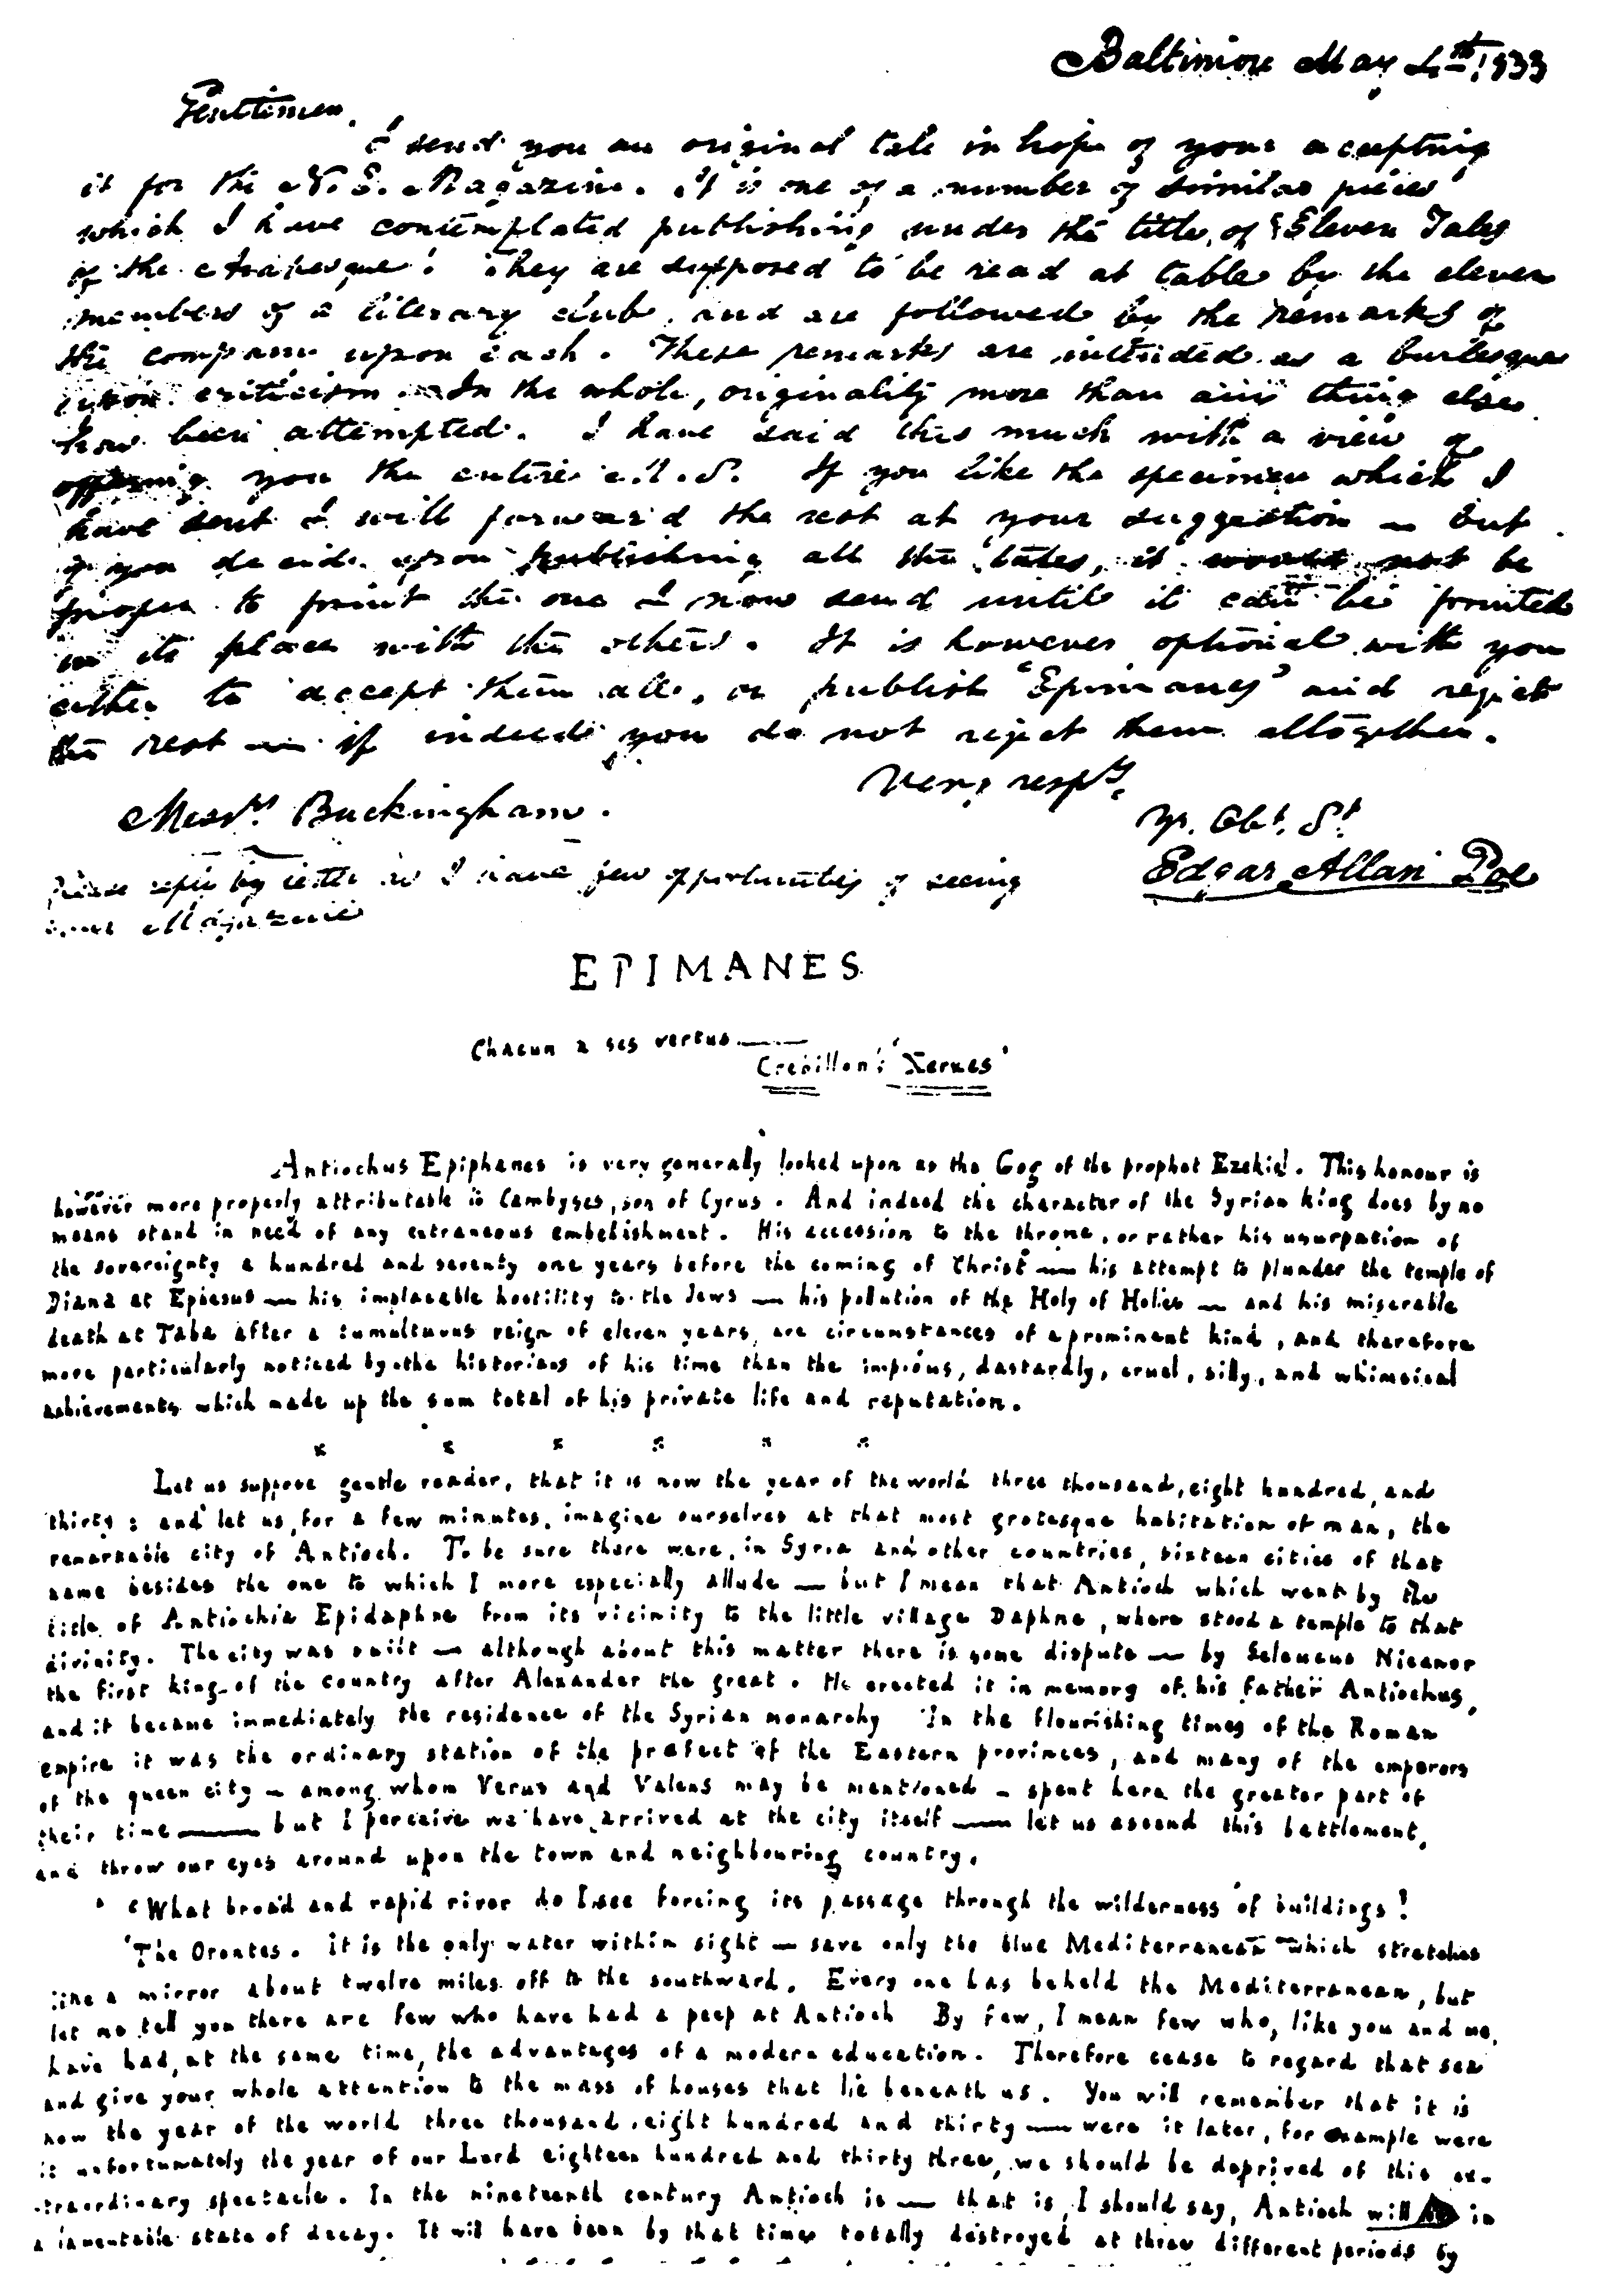 Autograph Letter From Poe To The Editors Of New England Magazine Offering His Tales Arabesque Reproduced Facsimile Original